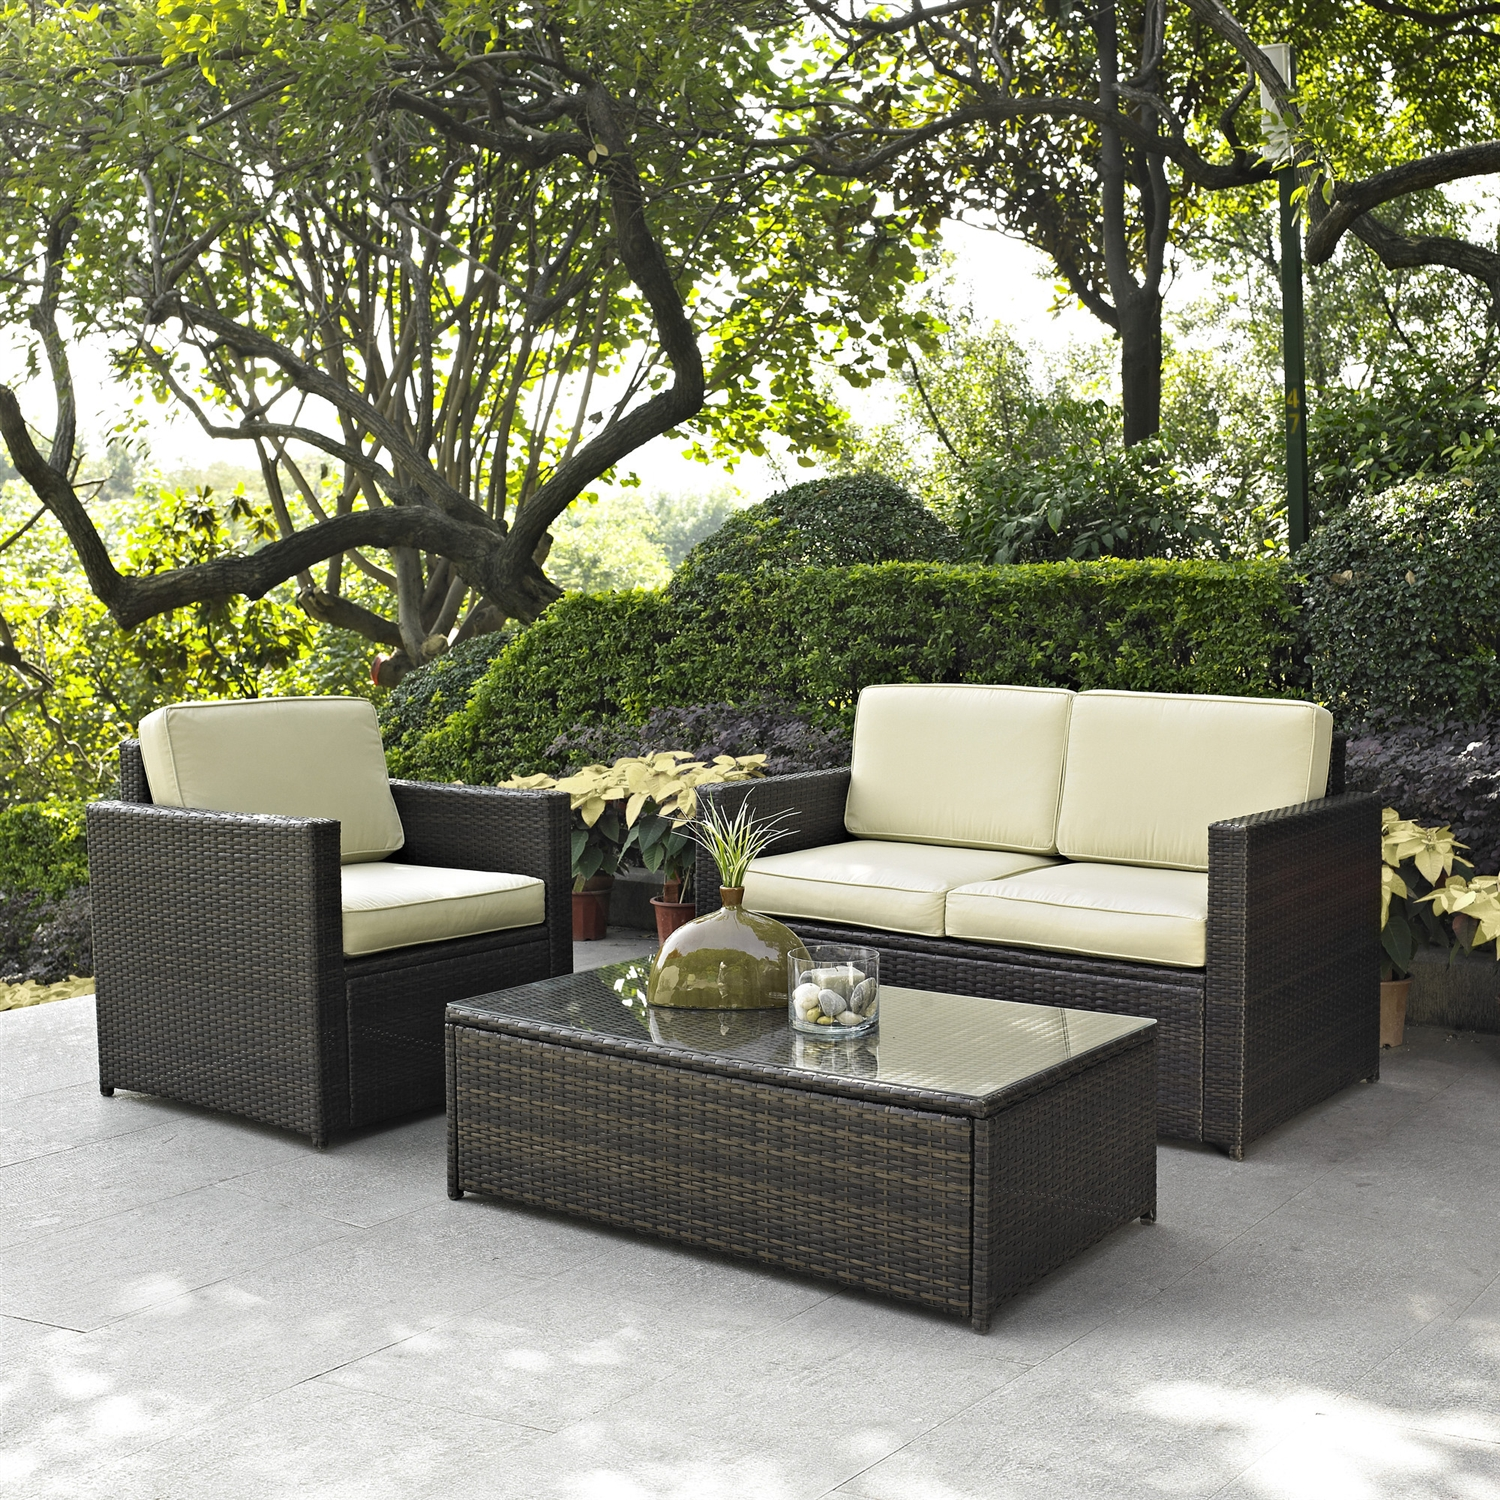 patio couch set  piece outdoor patio furniture set with chair loveseat and cocktail table